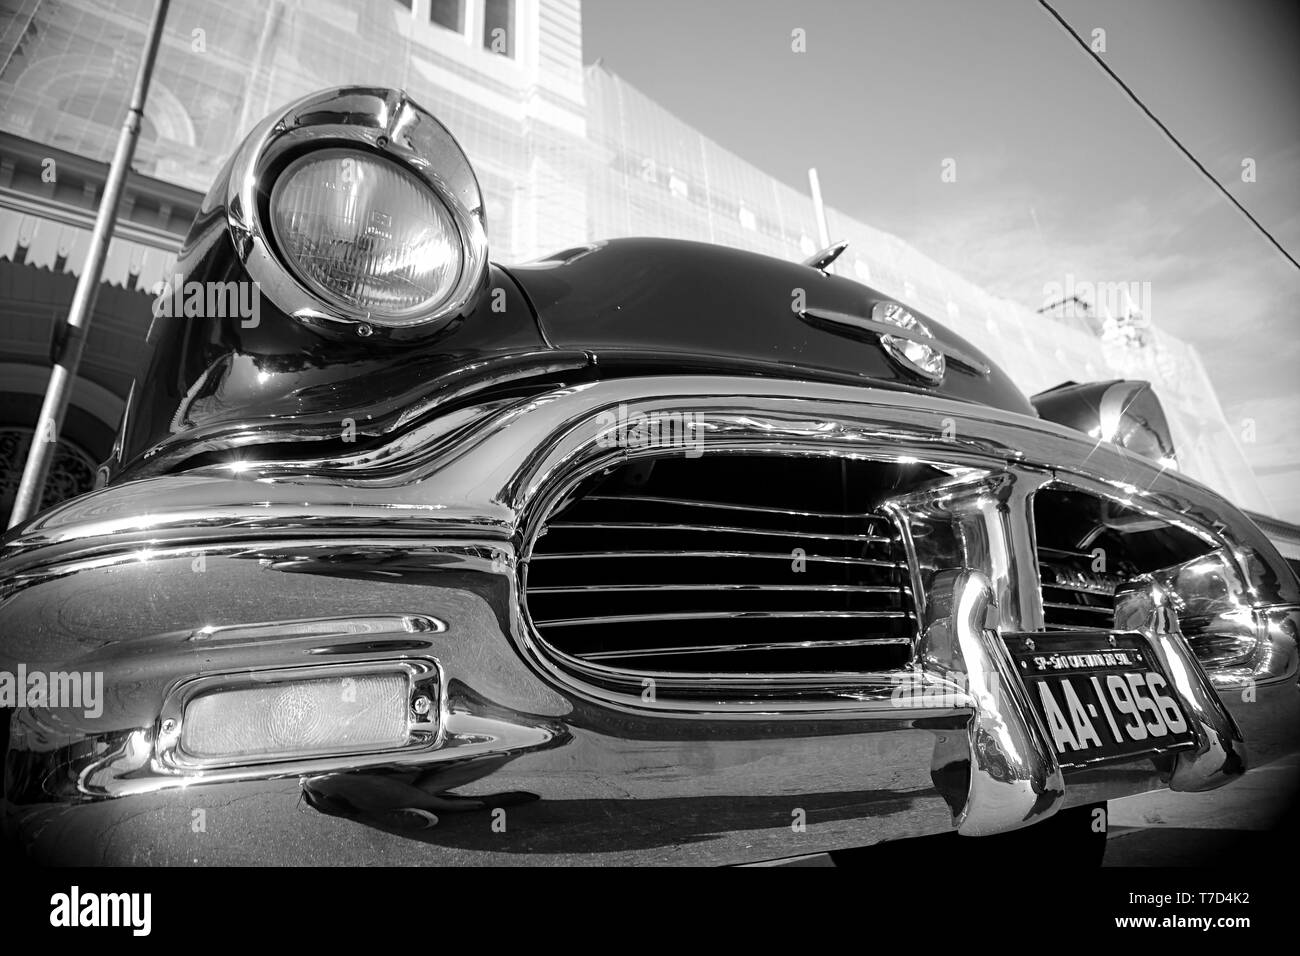 detail of classic car in monthly exposition in Sao Paulo - Stock Image